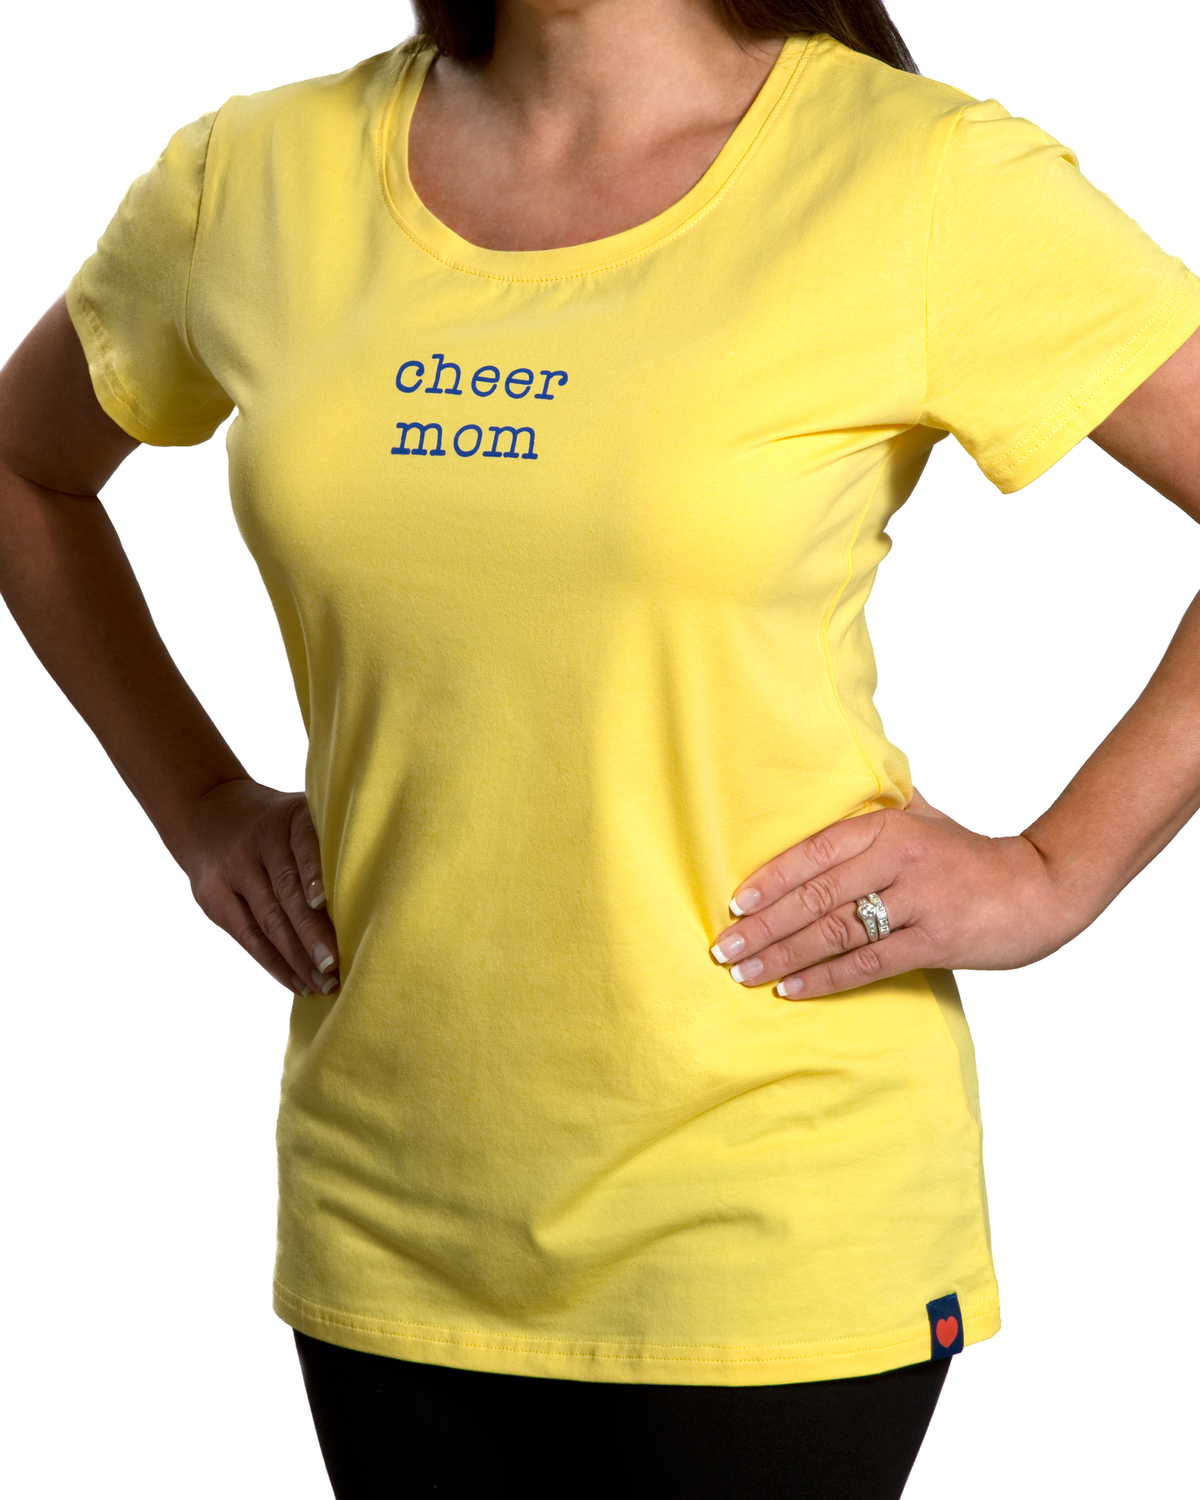 Cheer Mom by Mom Love - Cheer Mom - Small Yellow T-Shirt